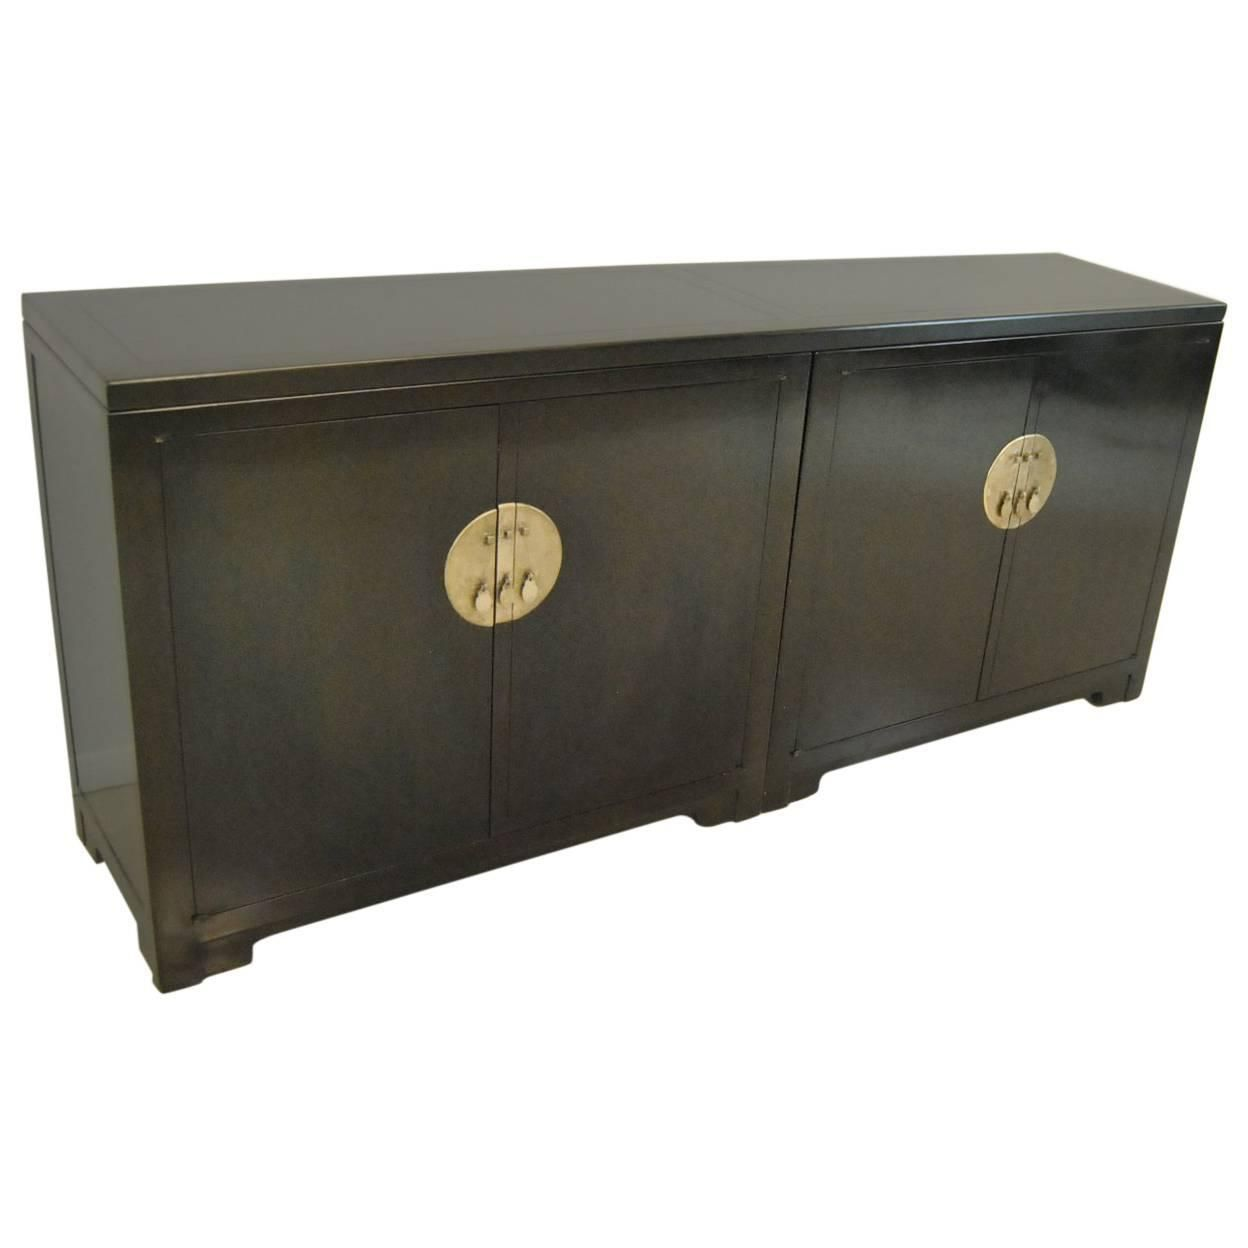 Credenza Buffet Far East Collection By Michael Taylor For Baker Furniture Baker Furniture Furniture Buffet